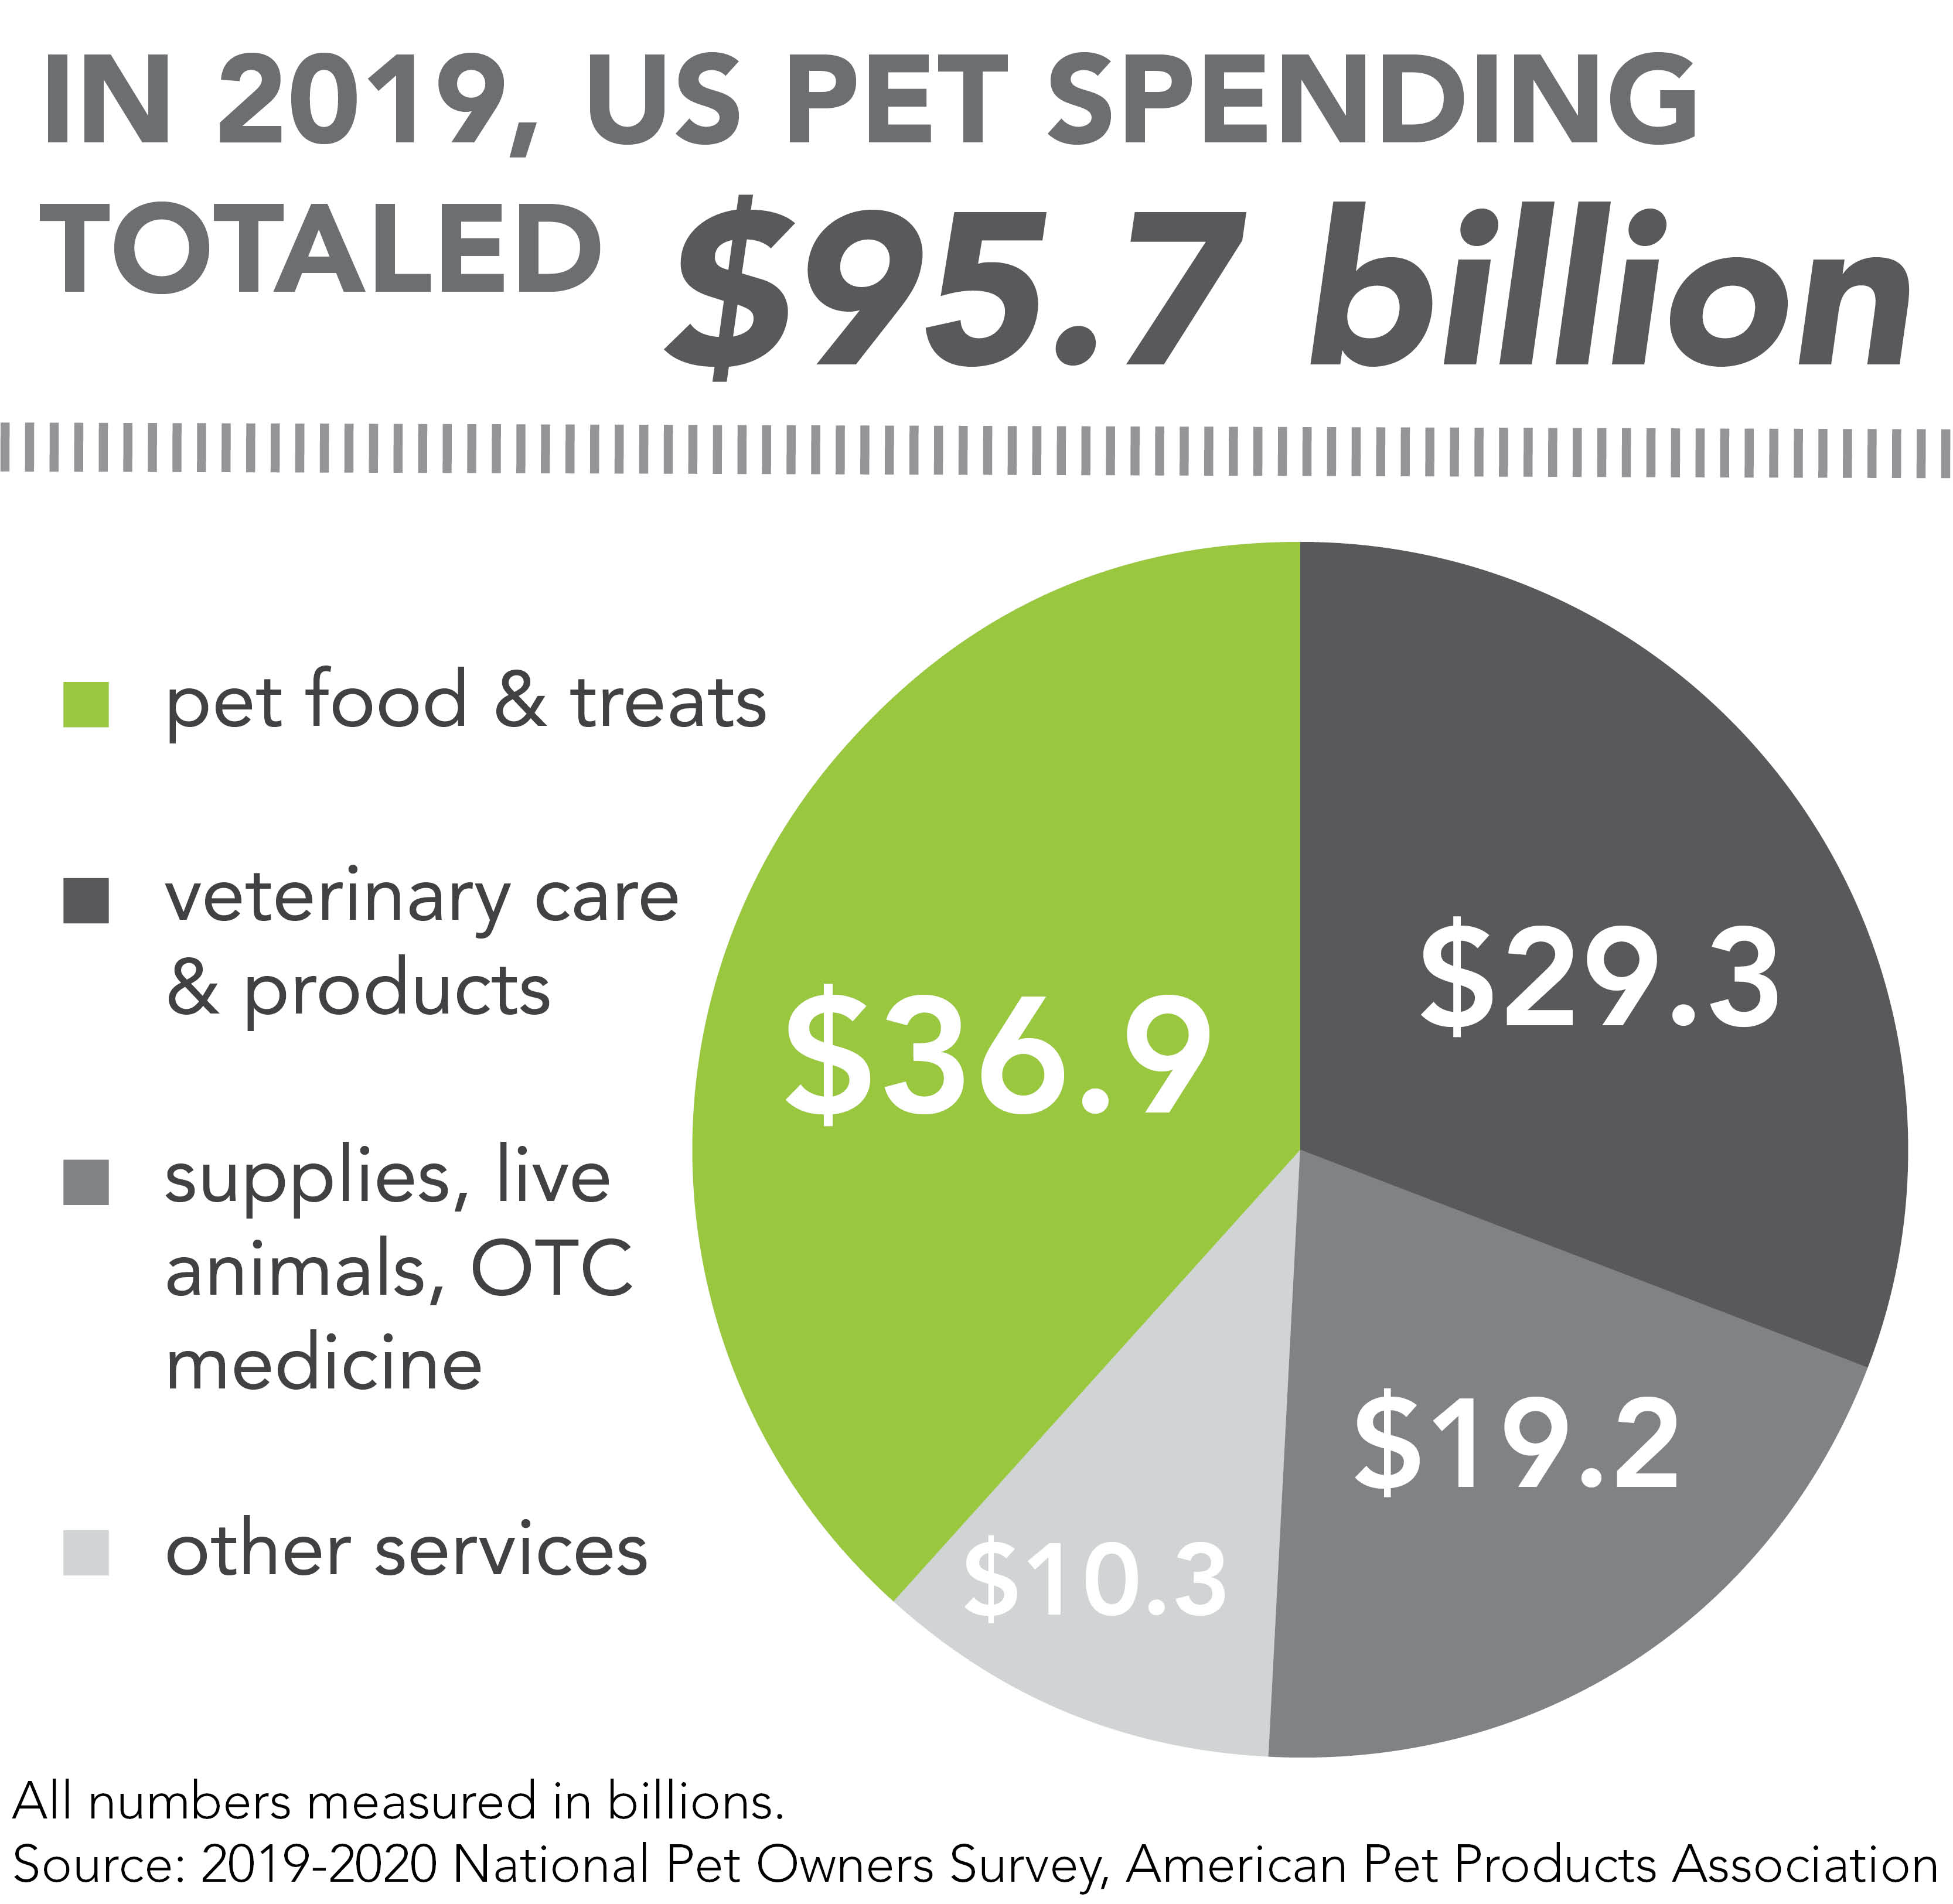 APPA's total estimated pet spending for 2019